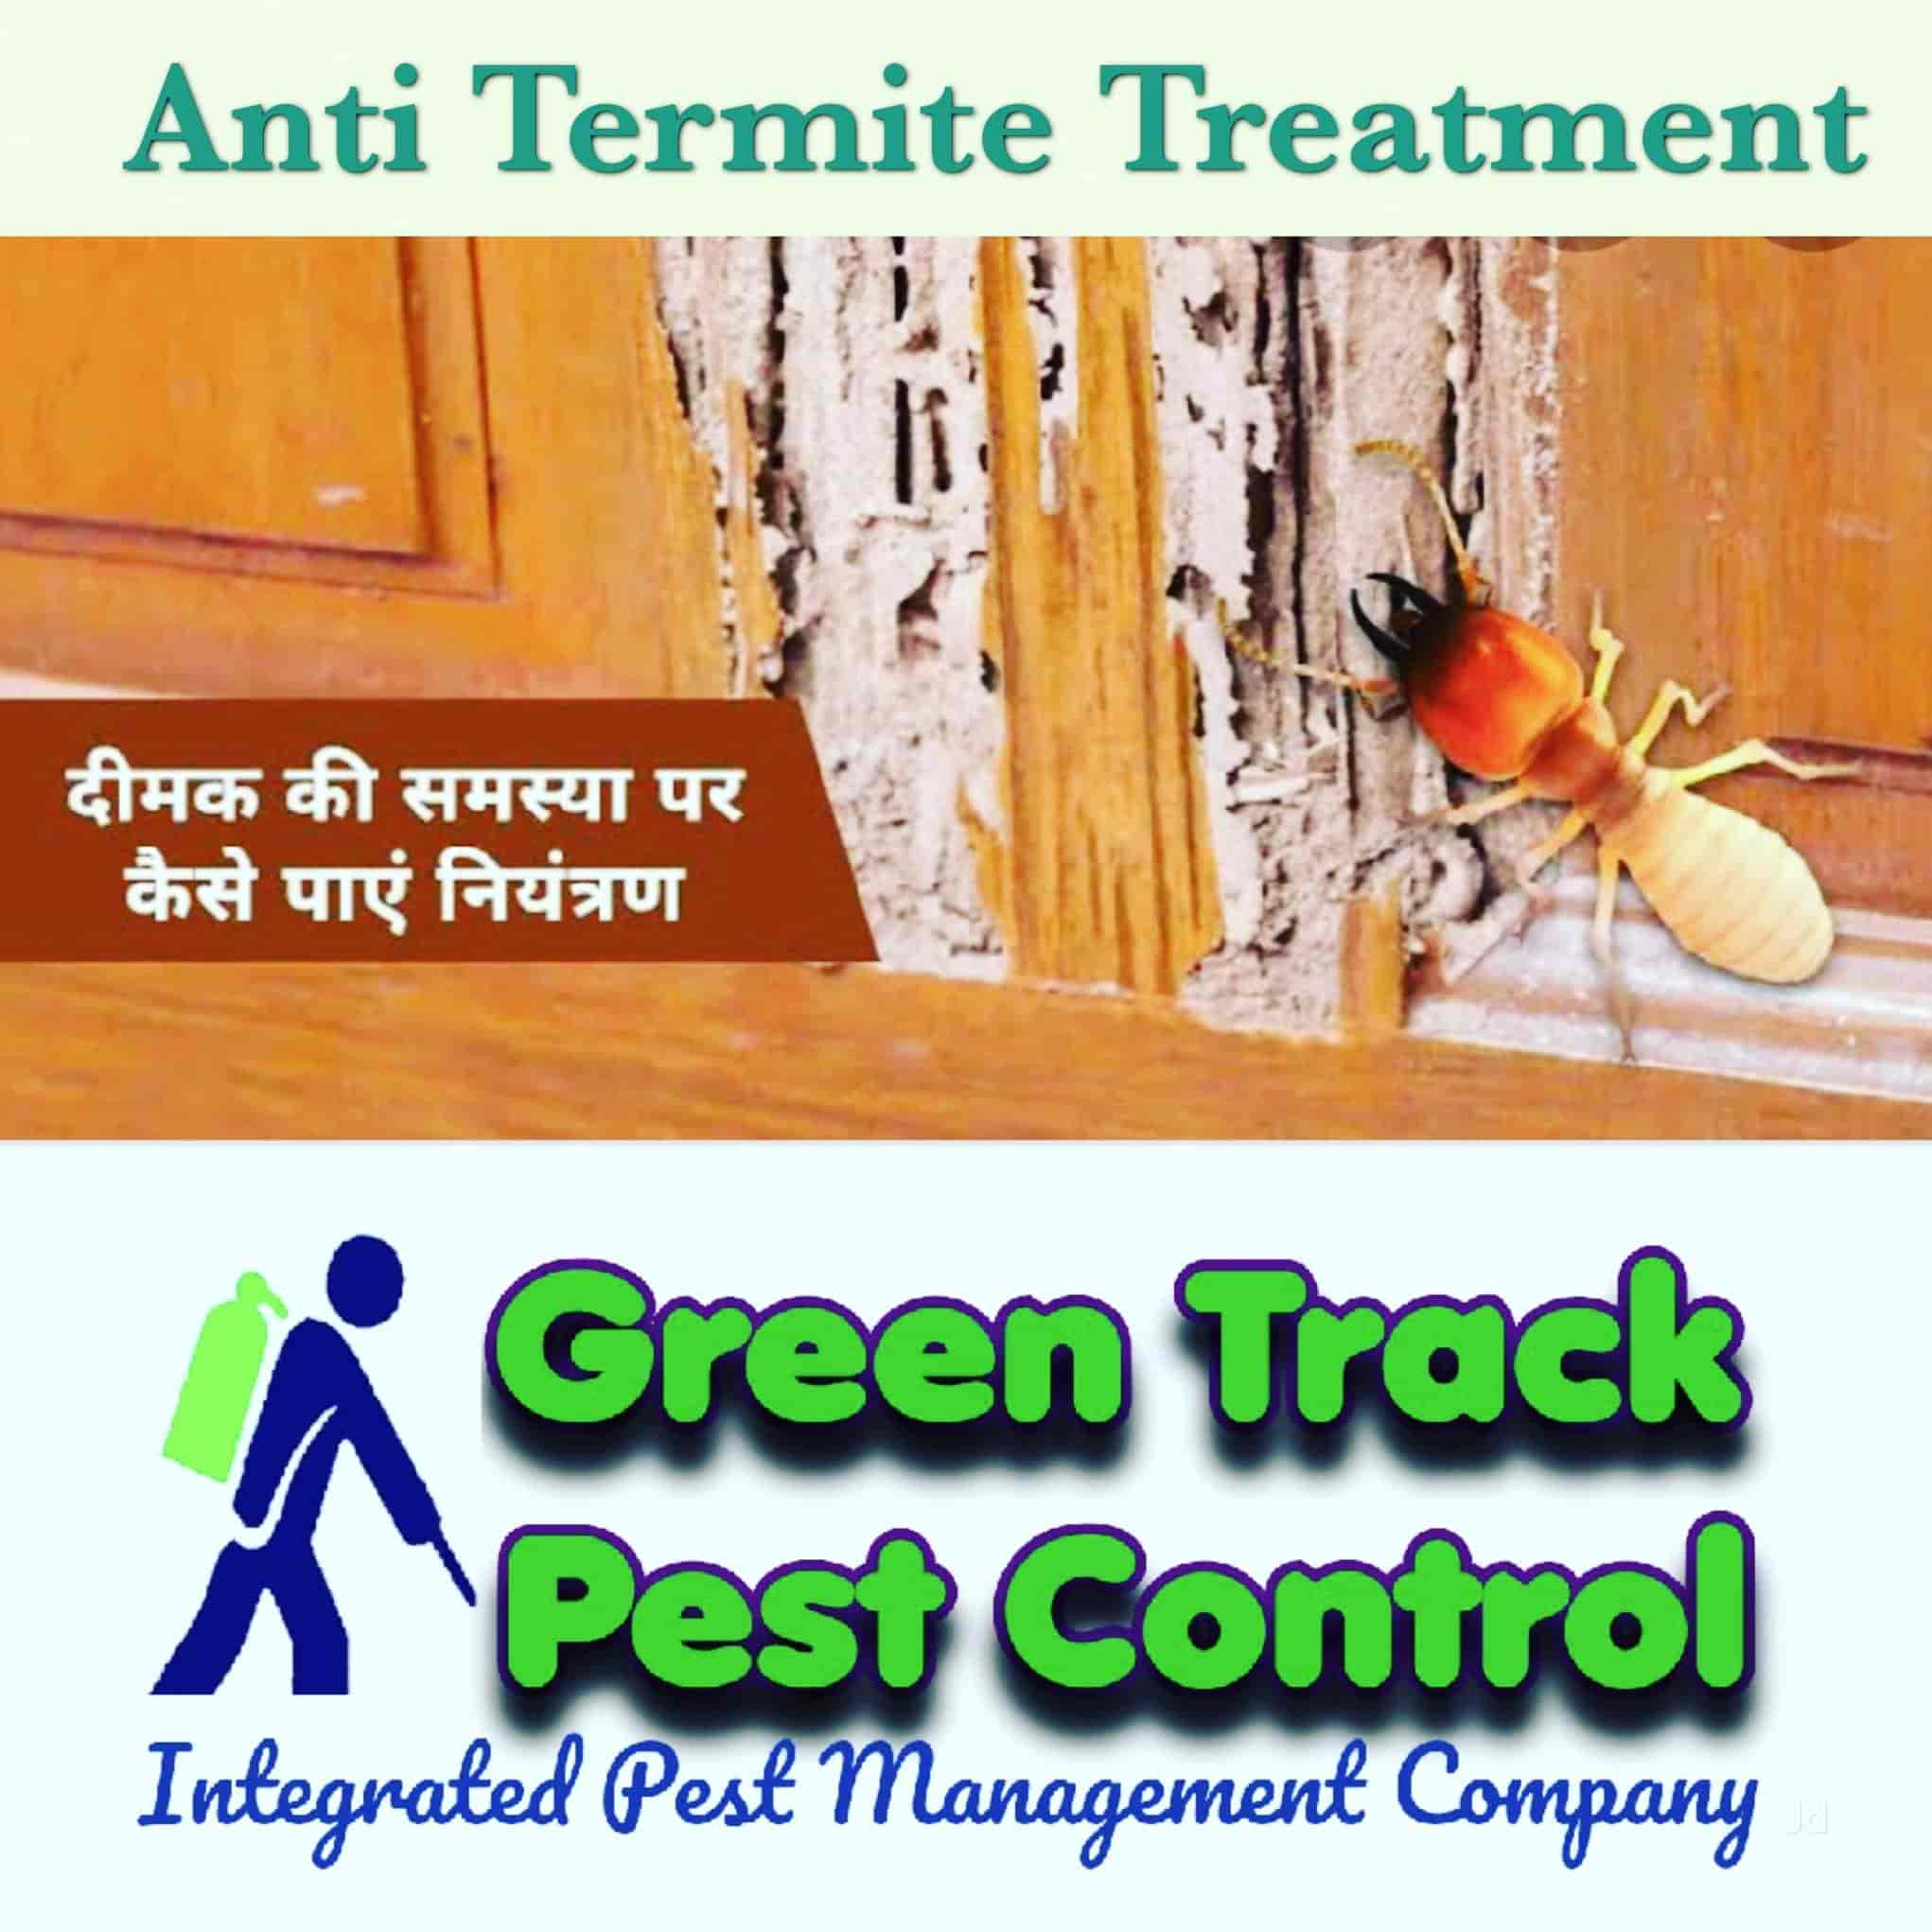 Top 50 Termite Control Services In Kanpur Best Termite Treatment Services Justdial